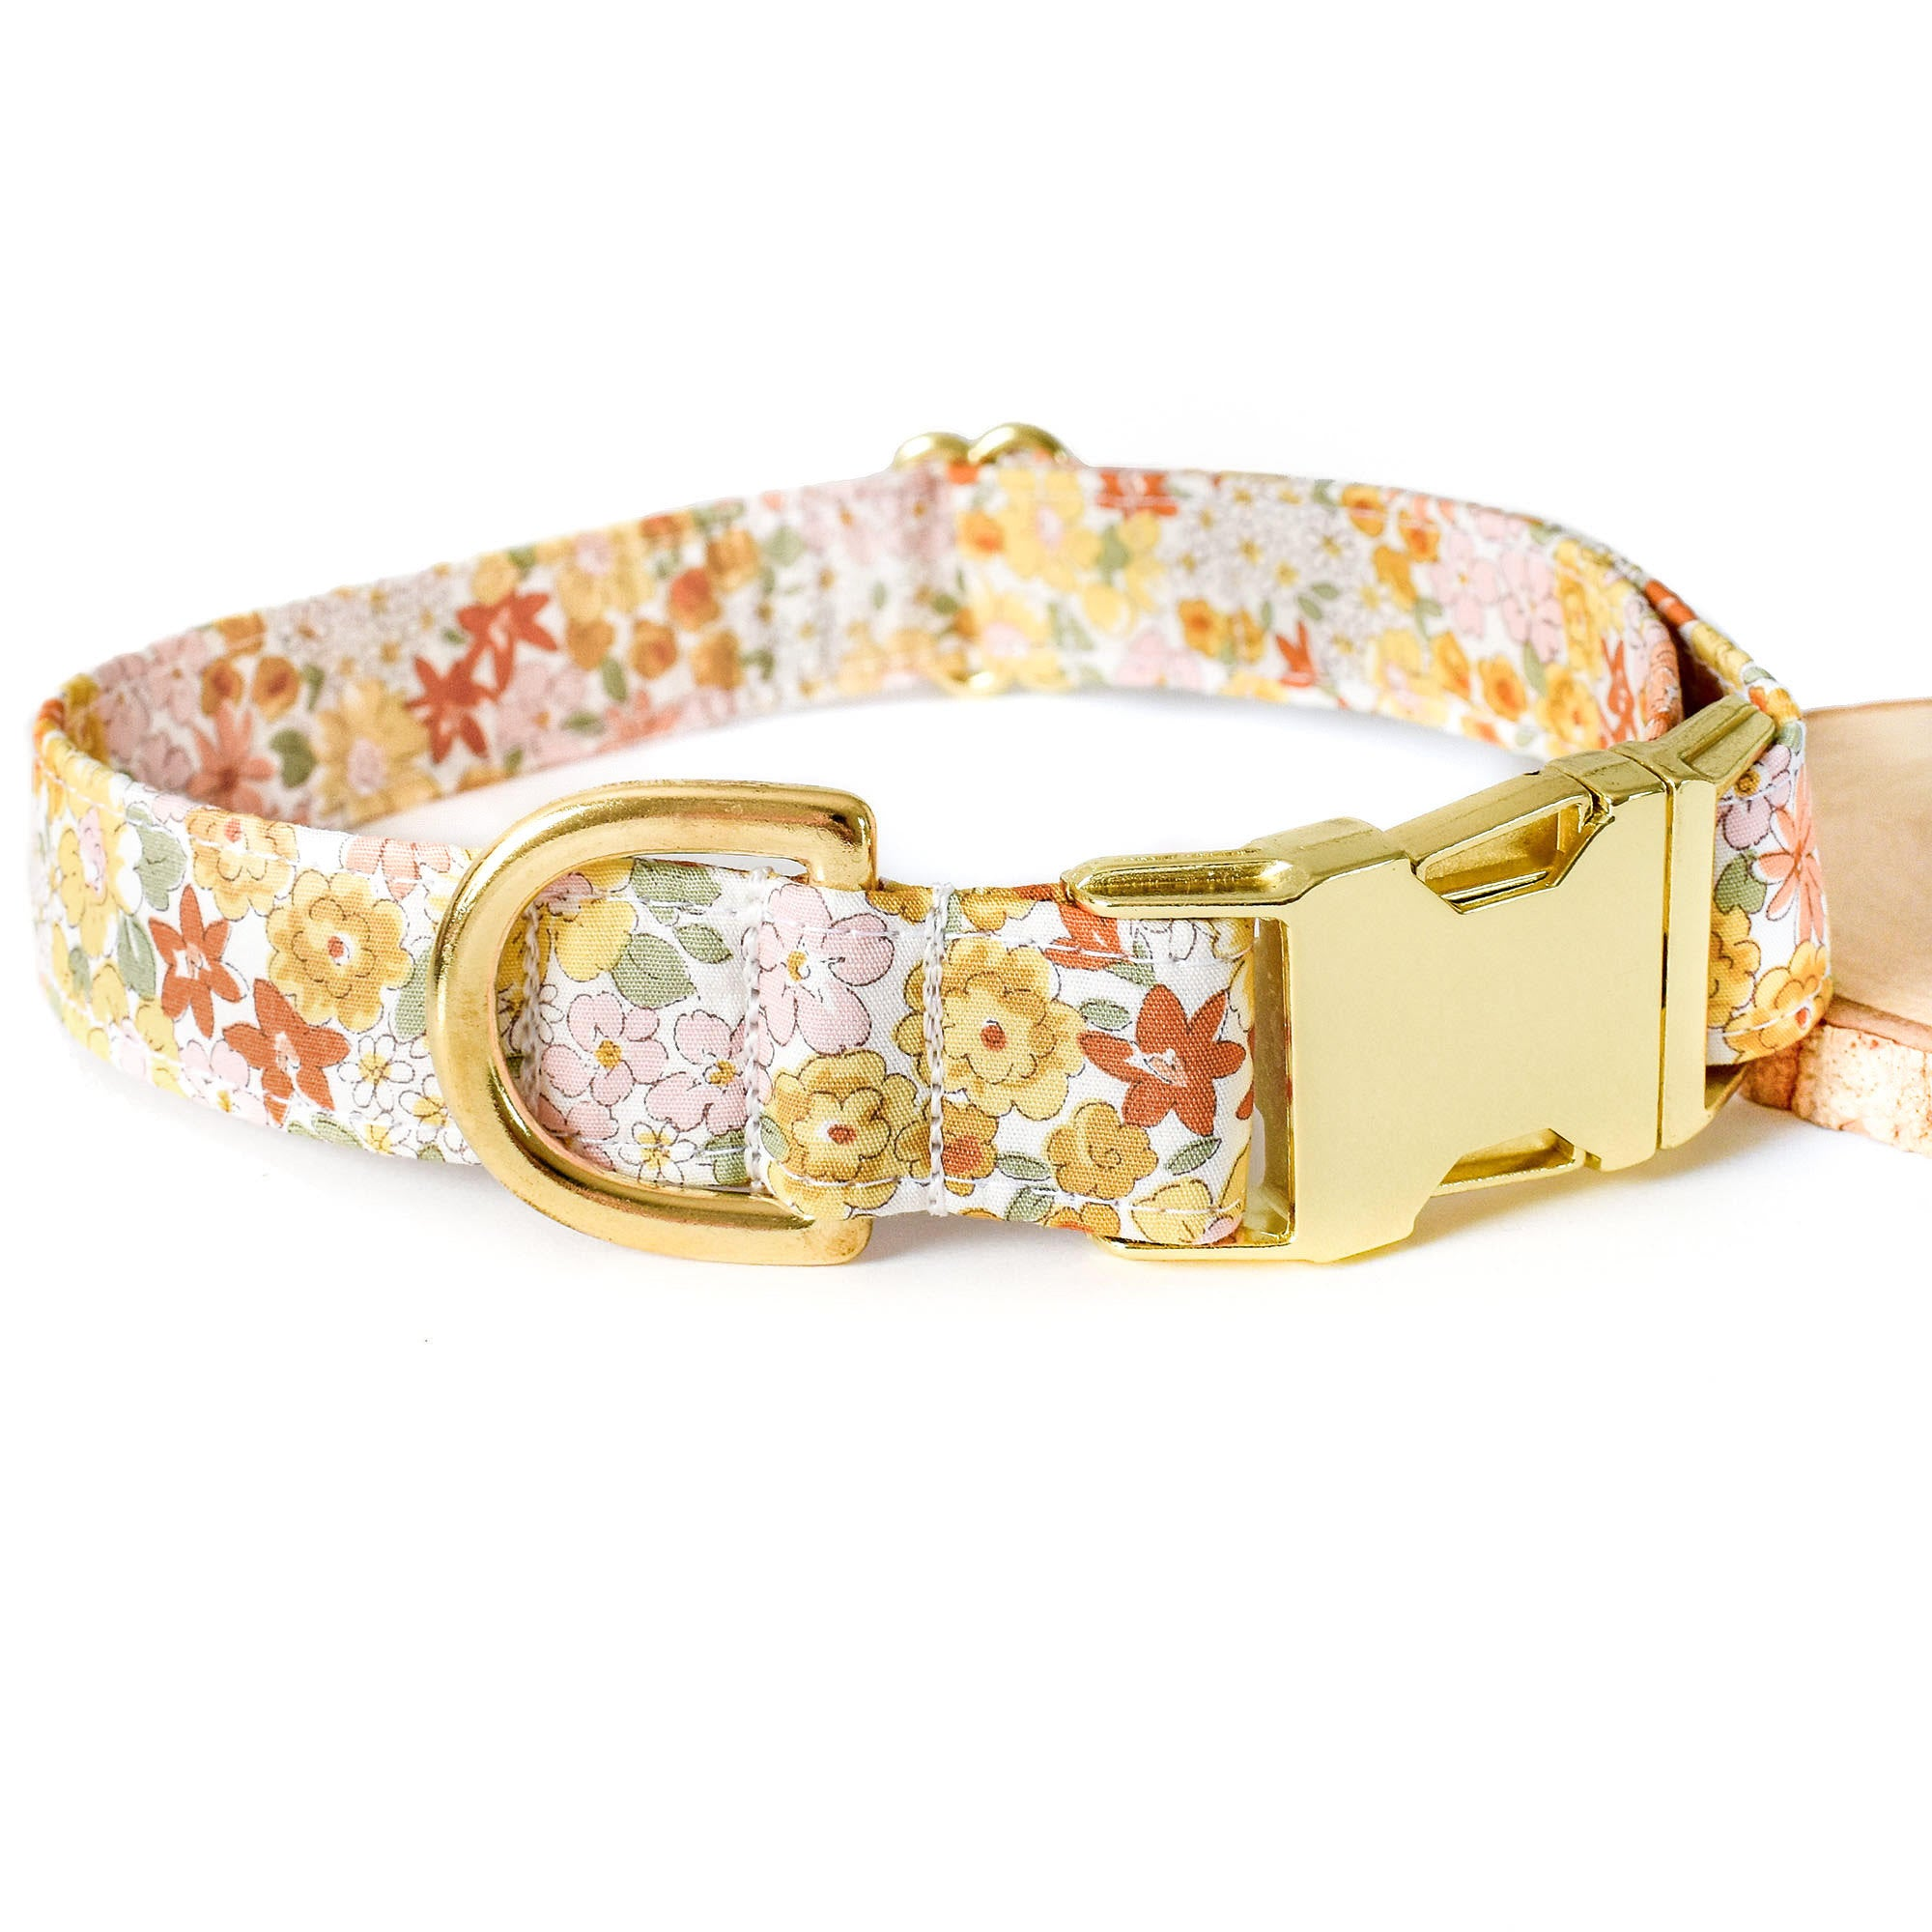 SUNSET MEADOW DOG COLLAR